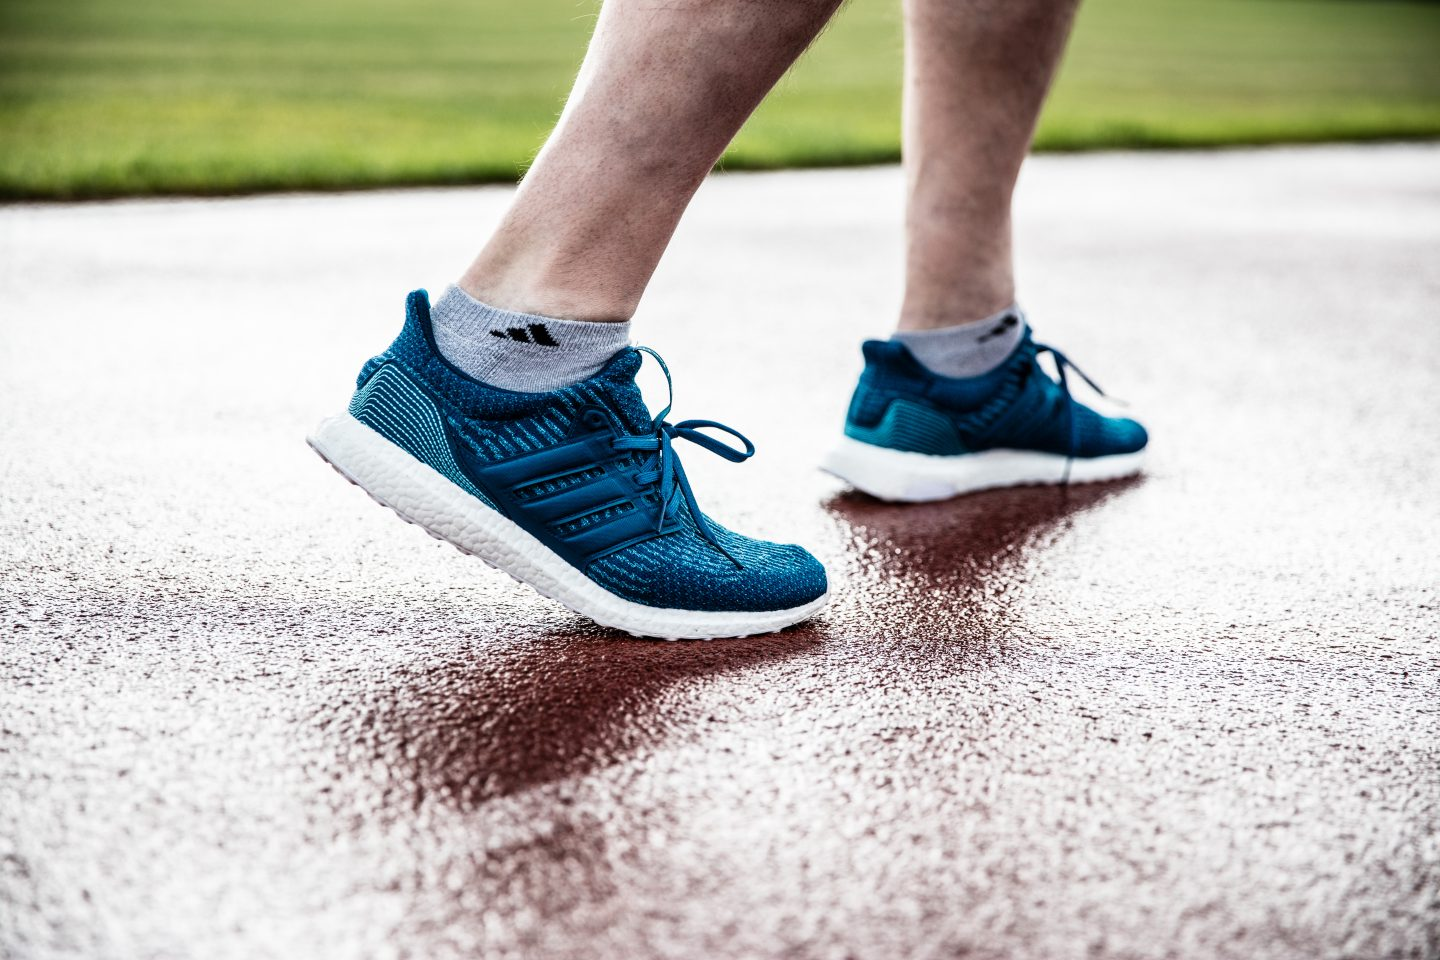 adidasRunning shoes UltraBOOST close up on running track; parley-running-for-the-oceans-boost-shoes-André-Maestrini-adidas-Running-GM